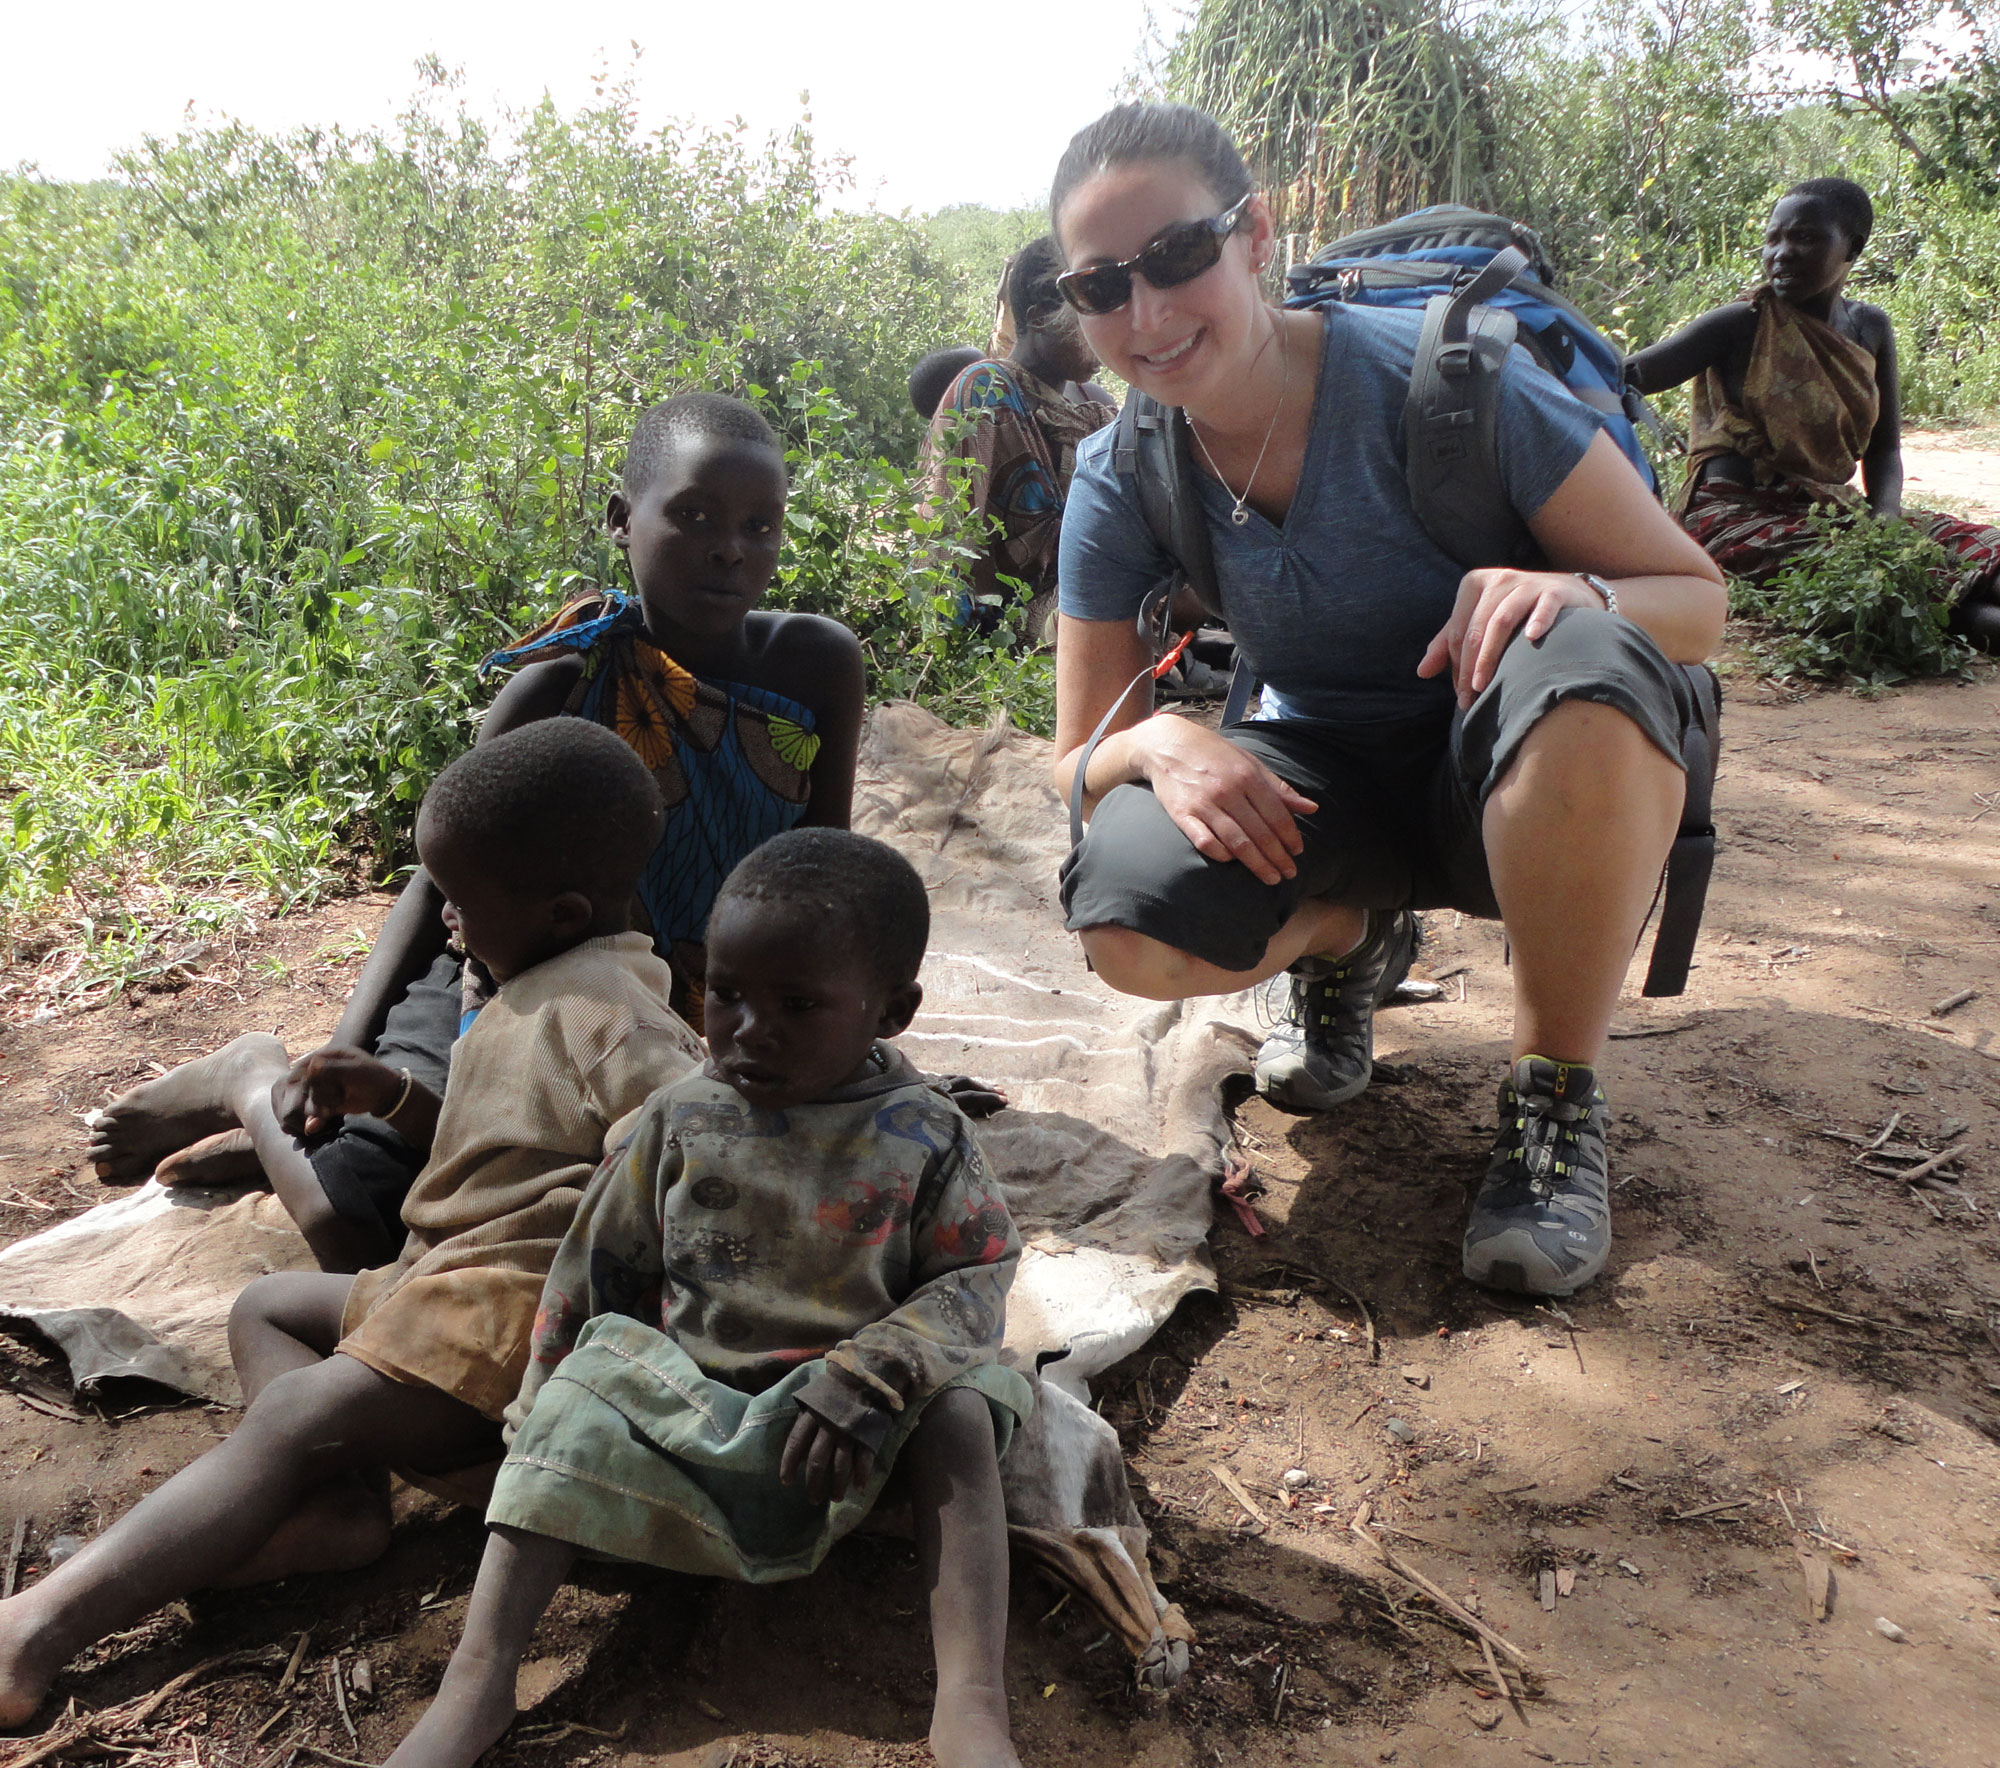 Travel Medicine - Visiting with the Hadzabe